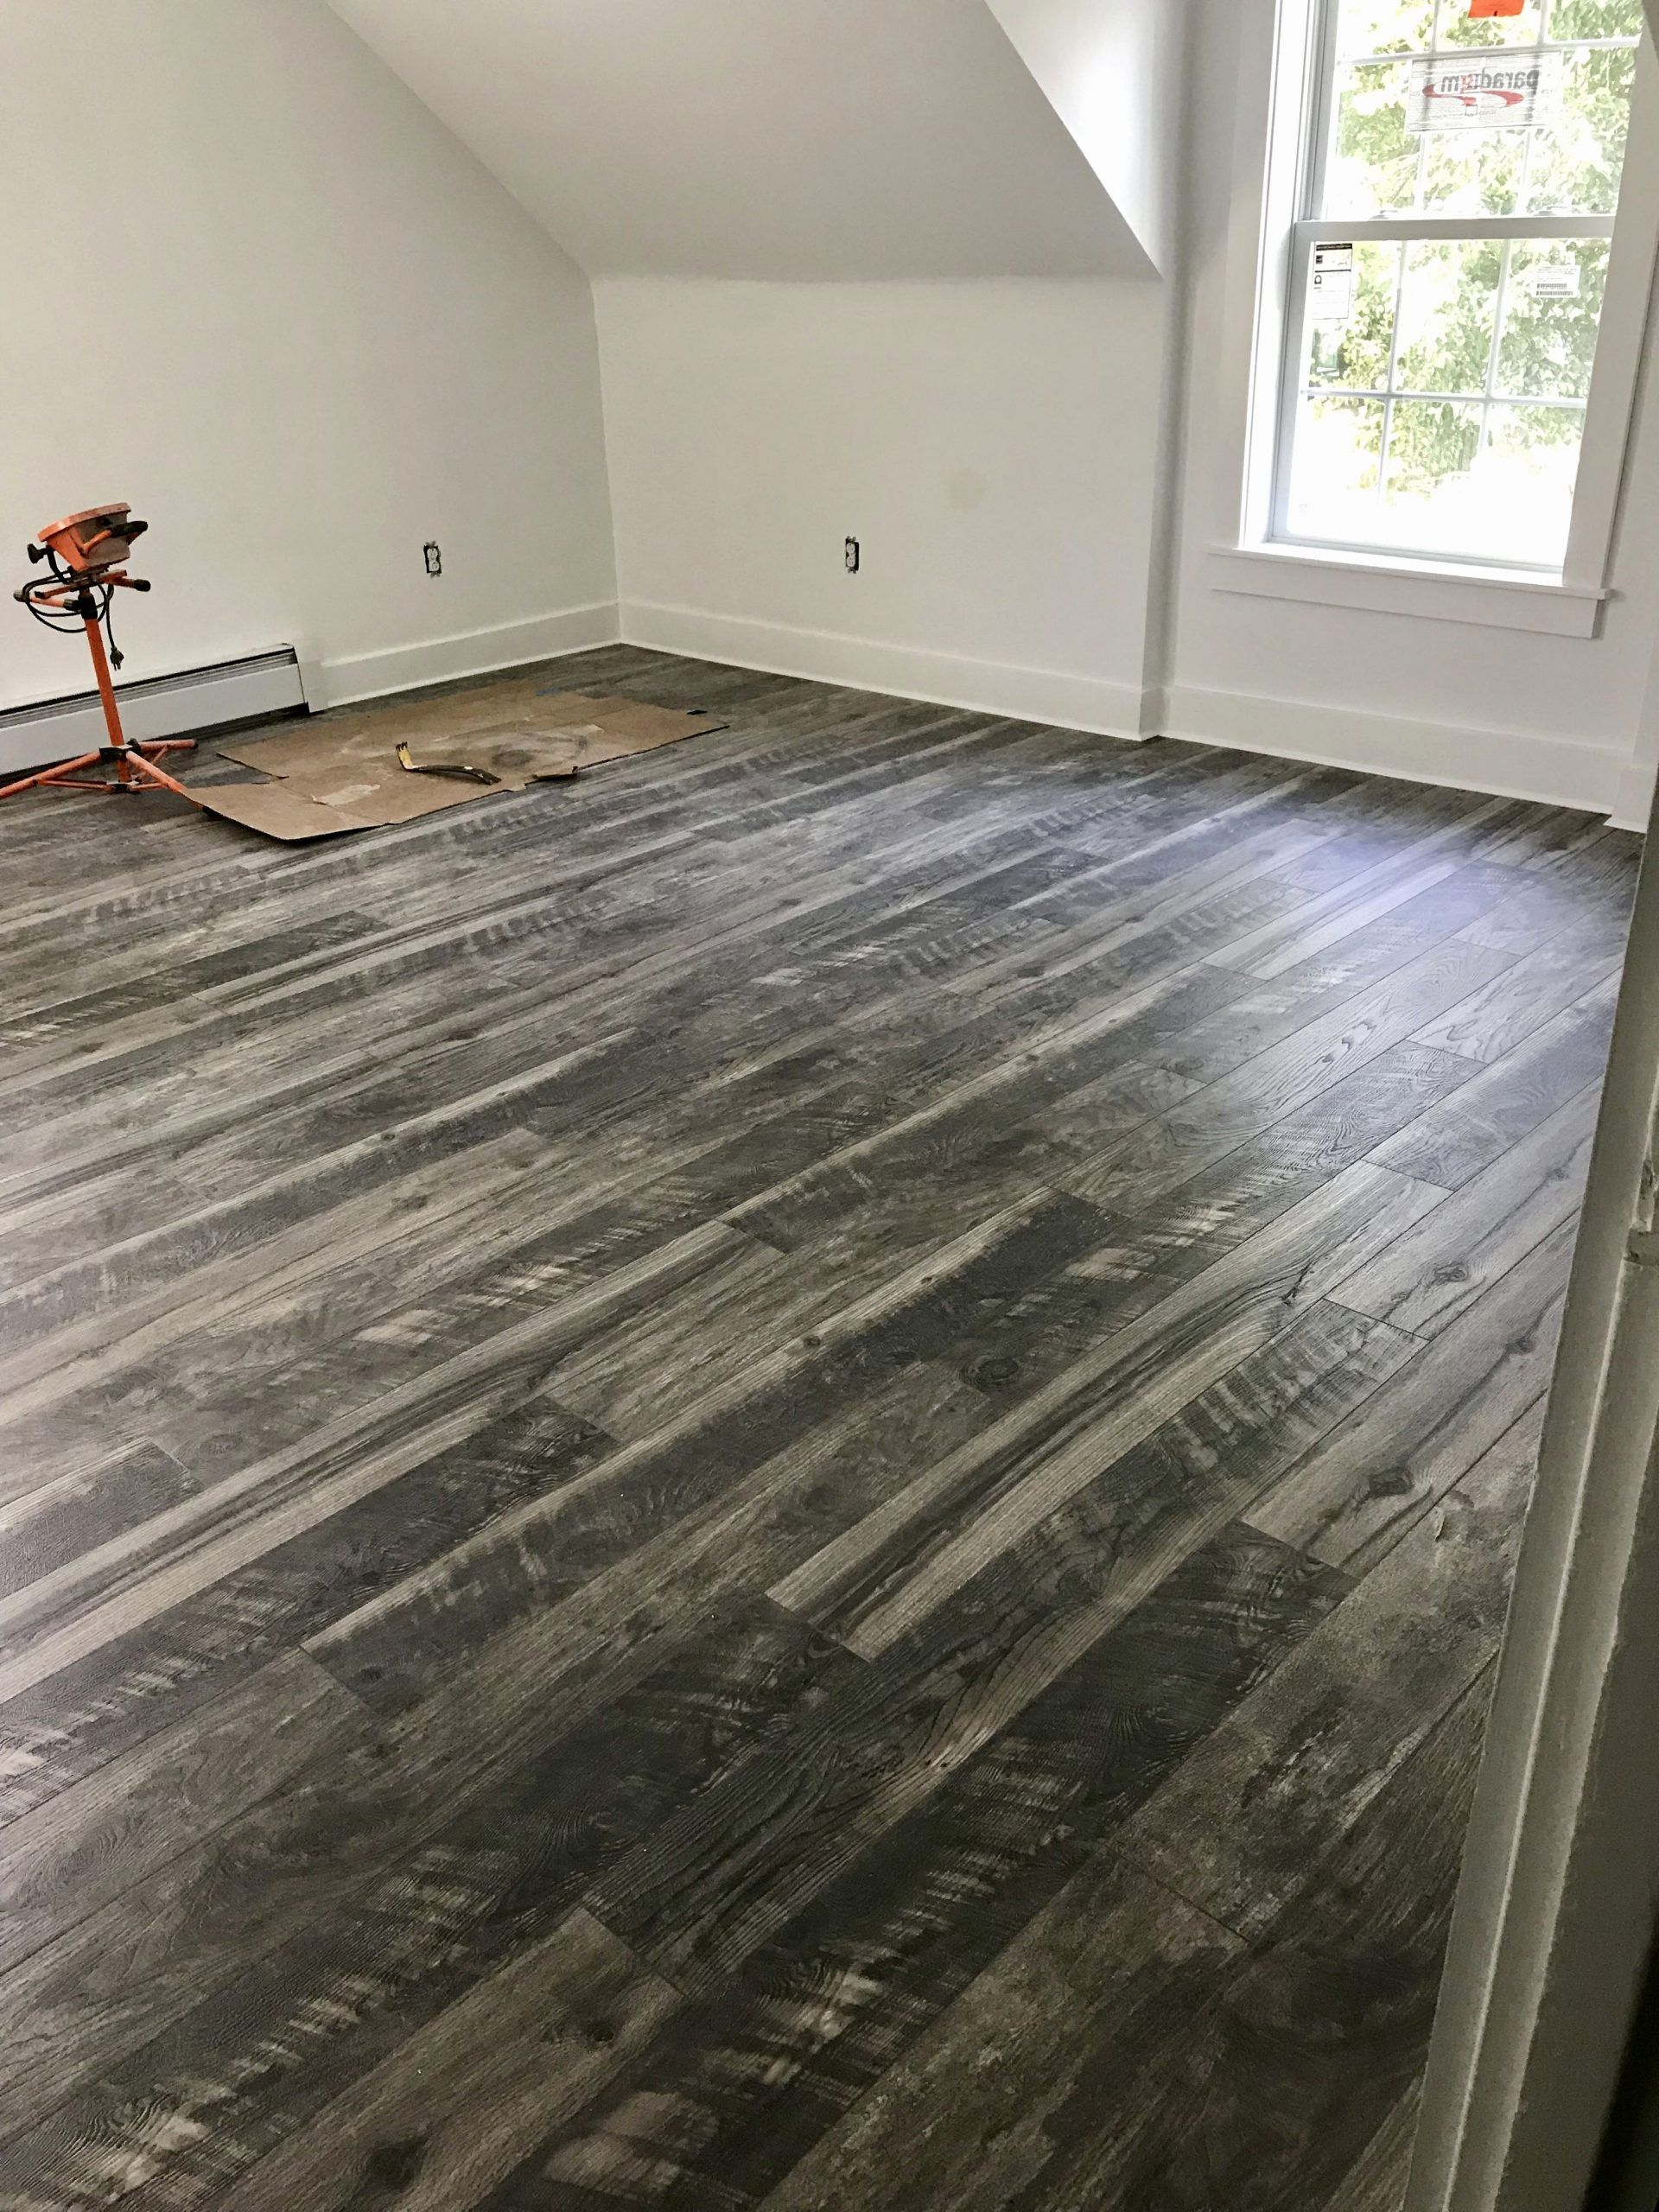 Bedroom Laminate Flooring Ideas Inspirational Home Decorators Collection Cinder Wood Fusion 12 Mm Thi In 2020 Flooring New House Construction Bedroom Laminate Flooring